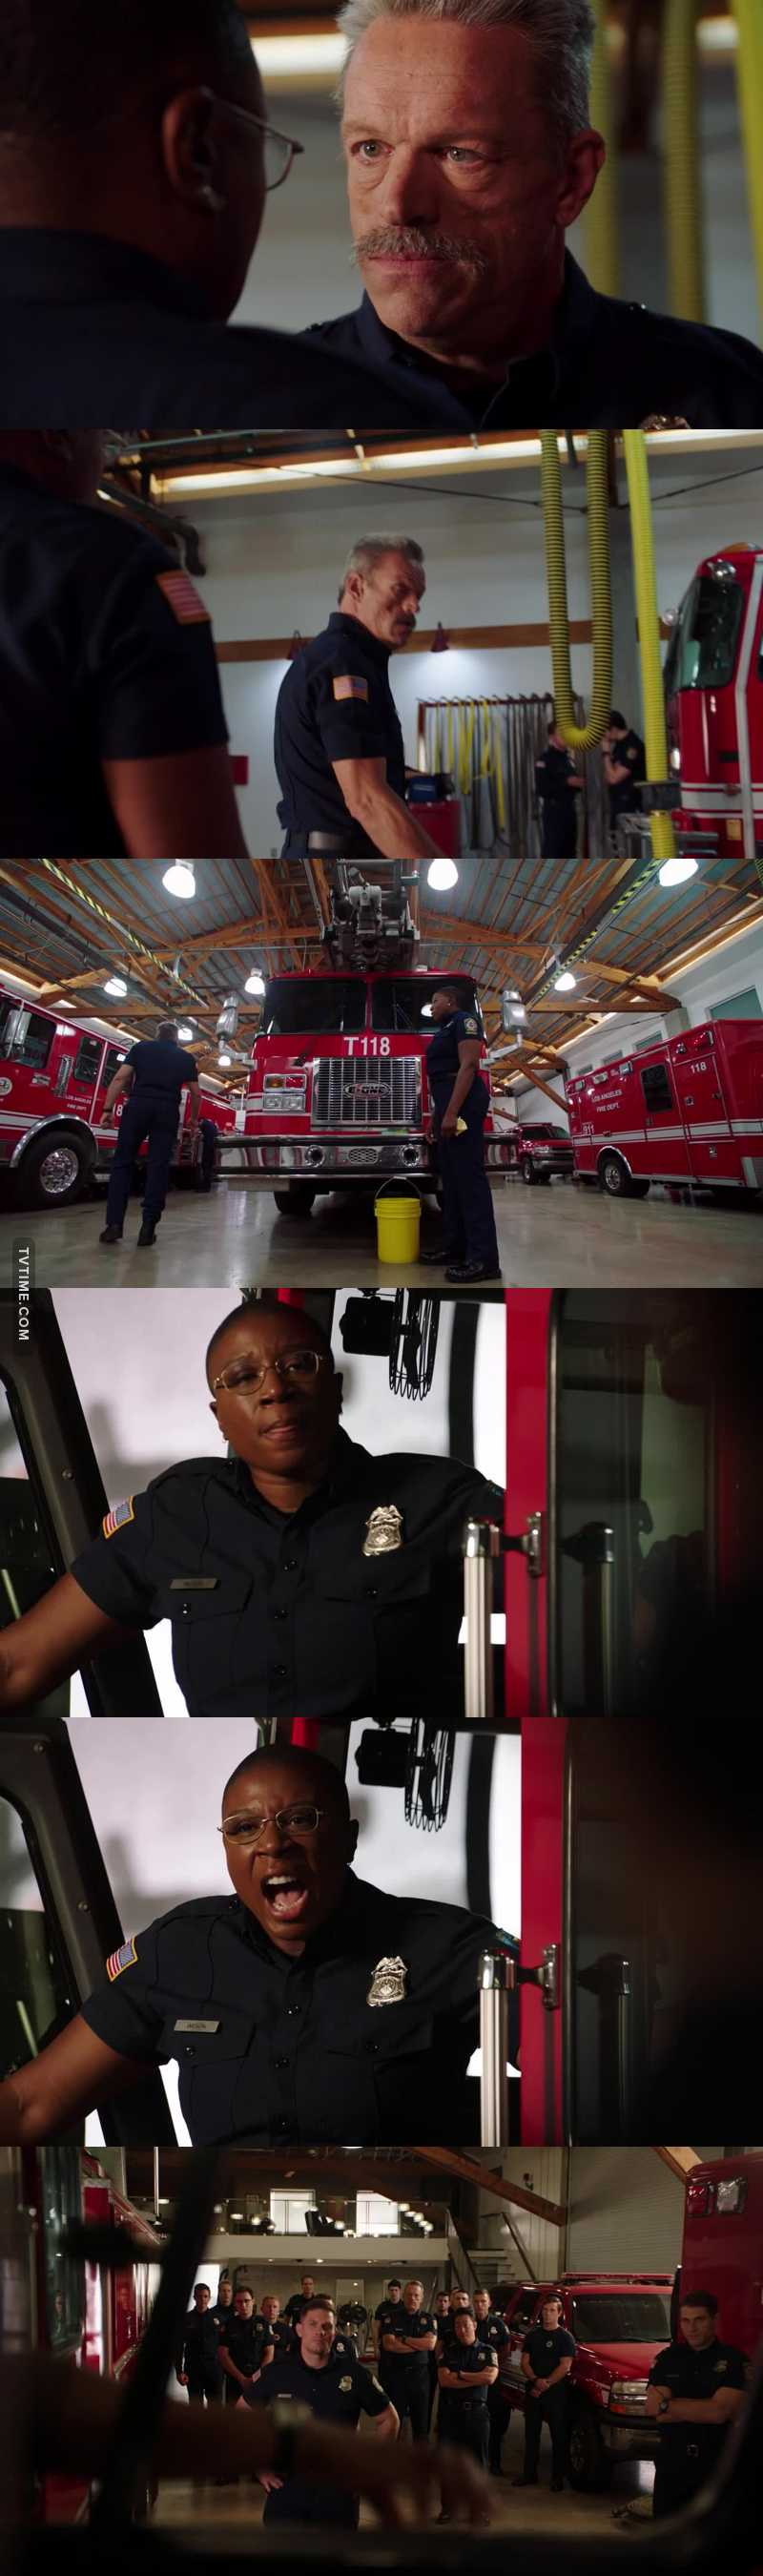 Just when you thought the asshole couldn't get any worse he moves up to total bastard. Hen was meant to save lives. I hope we see more storylines like this of all are Great 911 Fire Fighters🧯 🔥  Hen on explaining racism and bigotry and discrimination in a single sentence. Hen Speech was honestly Spoken from the truth and Heart.  She has a right to hold her head high and be proud of the lives she saves.  Great Great Episode. 👍♥️🔥👏👏👏👏👏